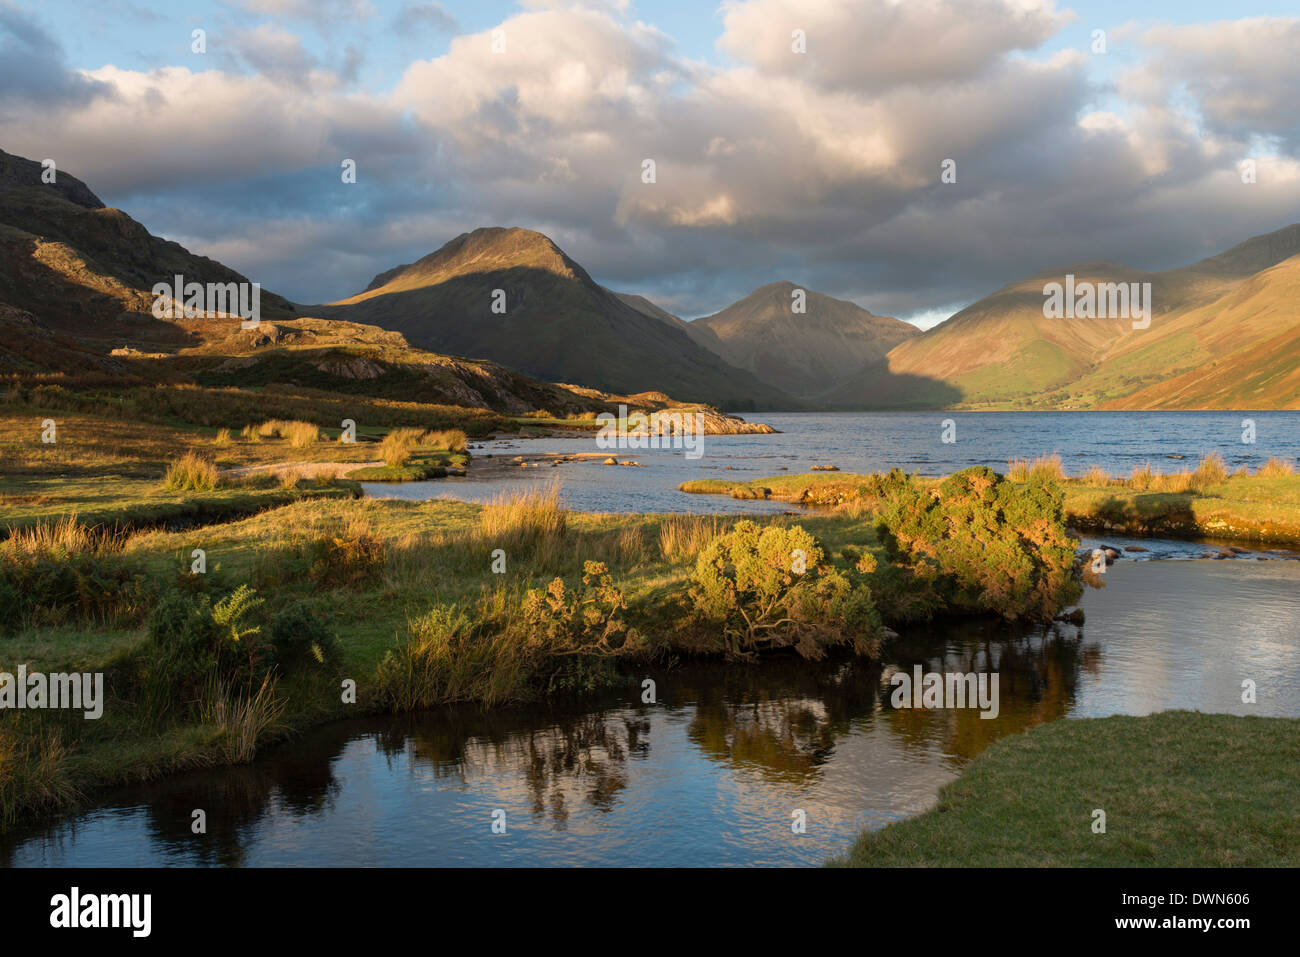 Belle Lumière automnale tardive à Wastwater, Parc National de Lake District, Cumbria, Angleterre, Royaume-Uni, Europe Photo Stock